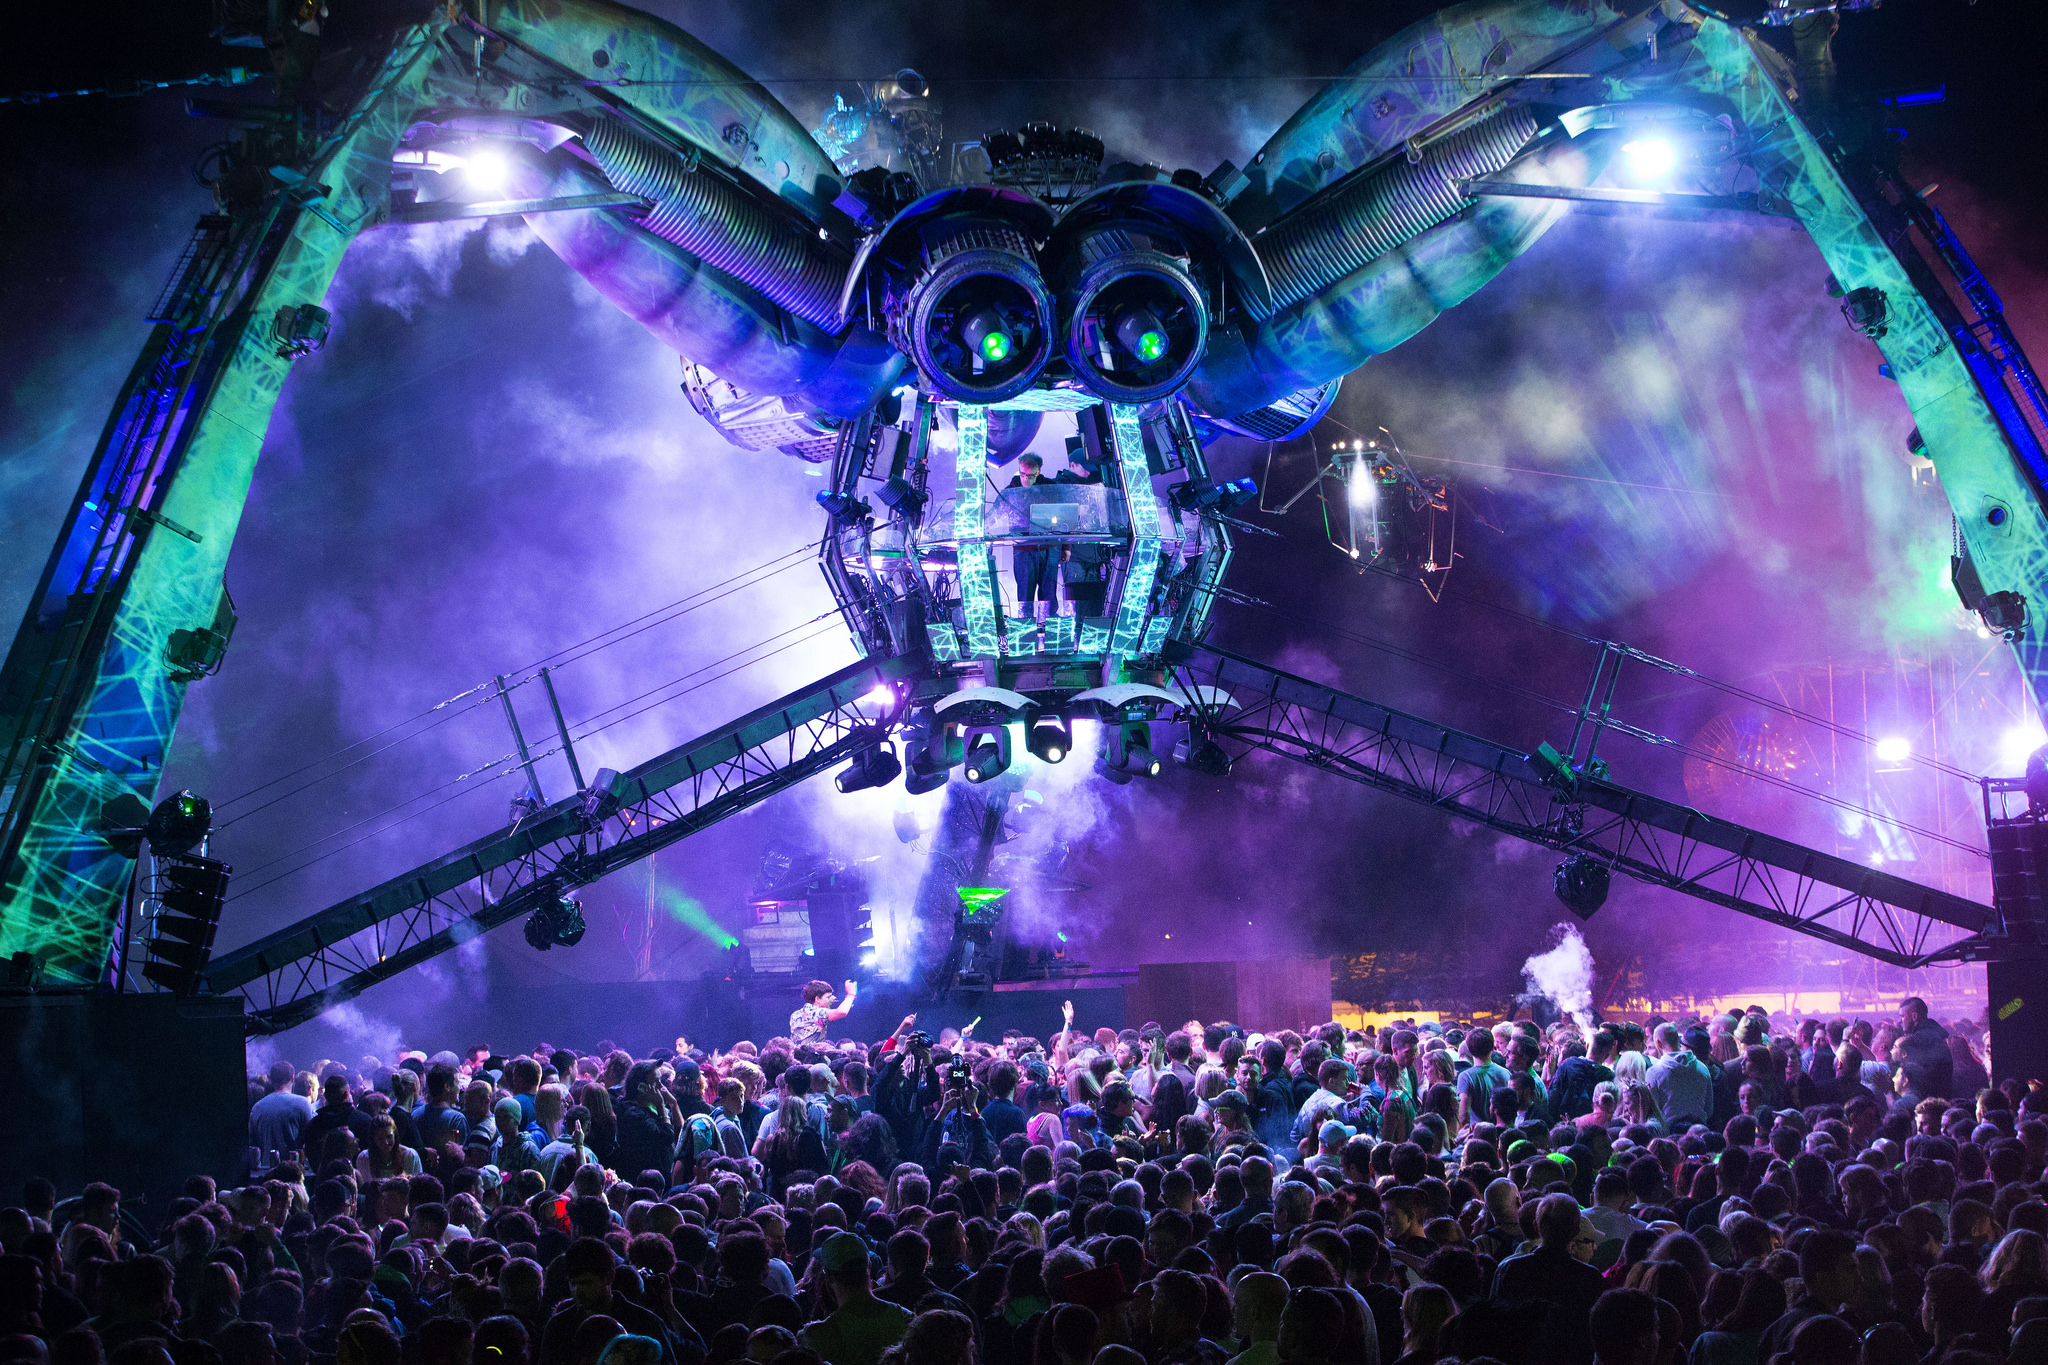 Purple mechanical spider in a crowd of people